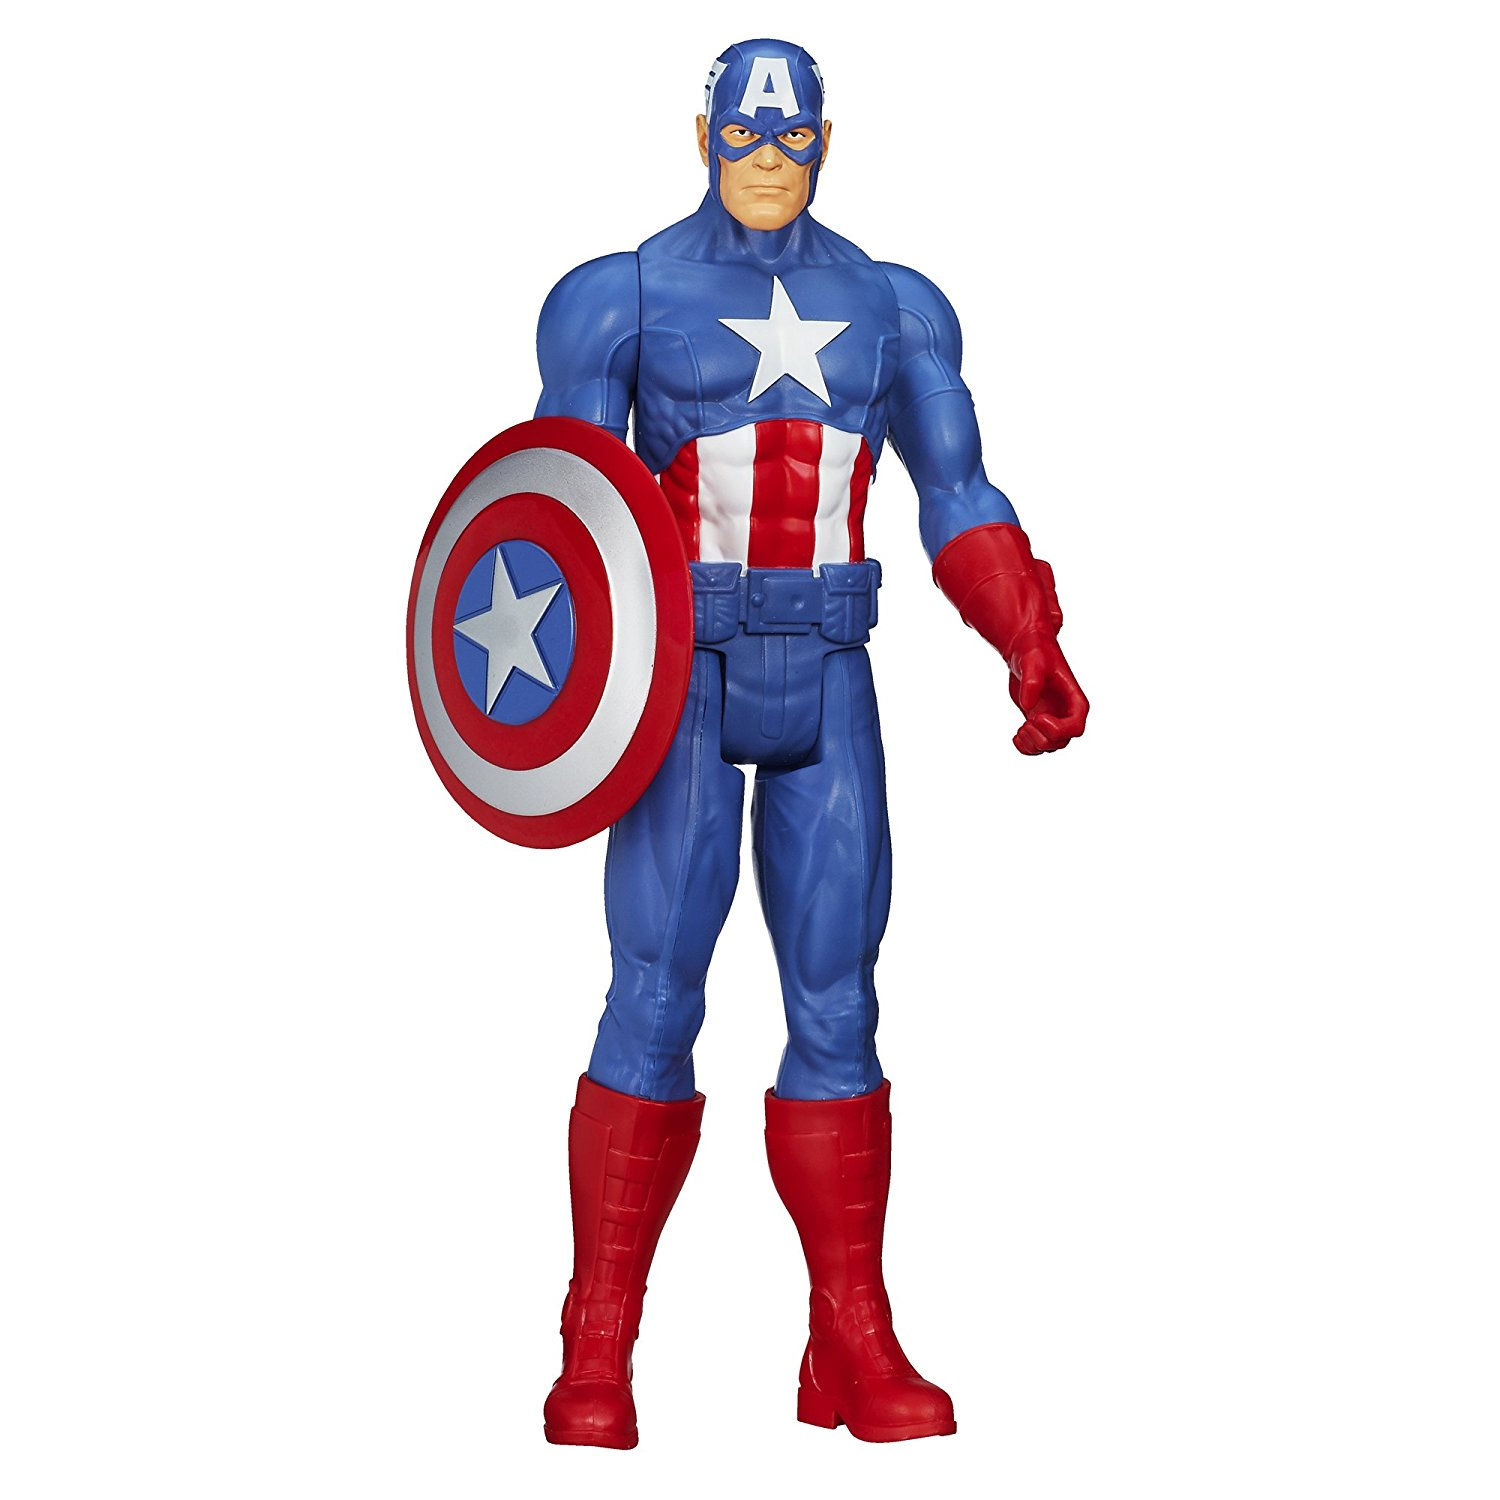 Marvel Avengers Titan Hero Series Captain America Action